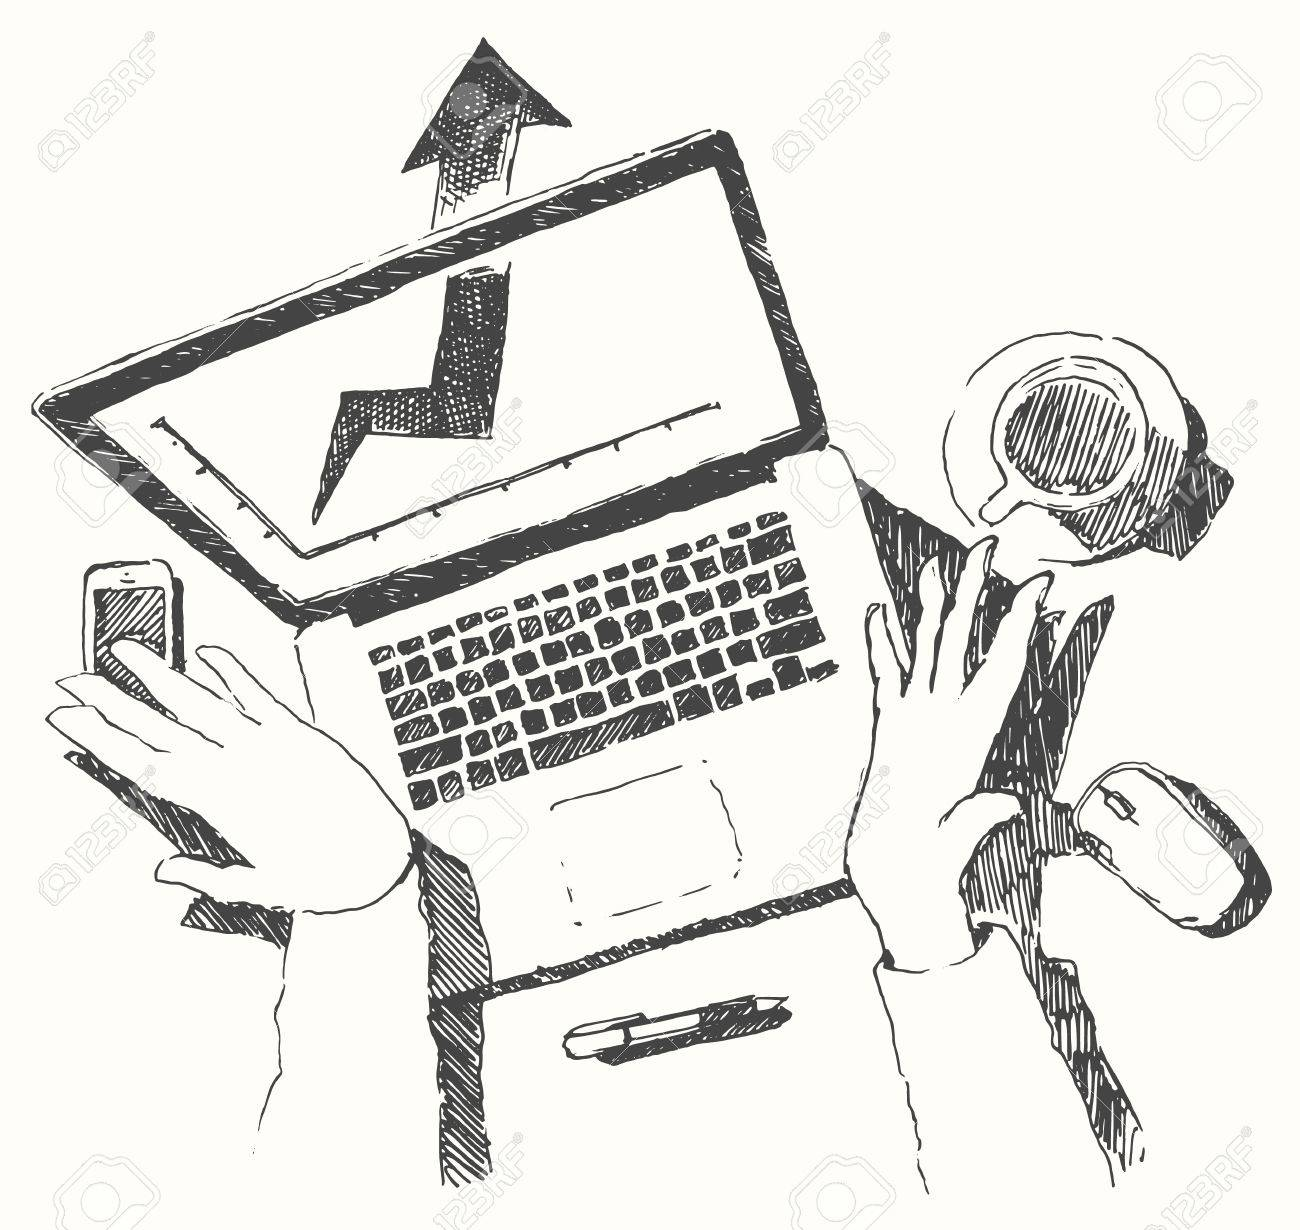 1300x1230 Sketch Of Hands With Computer Man Doing Office Work Top View